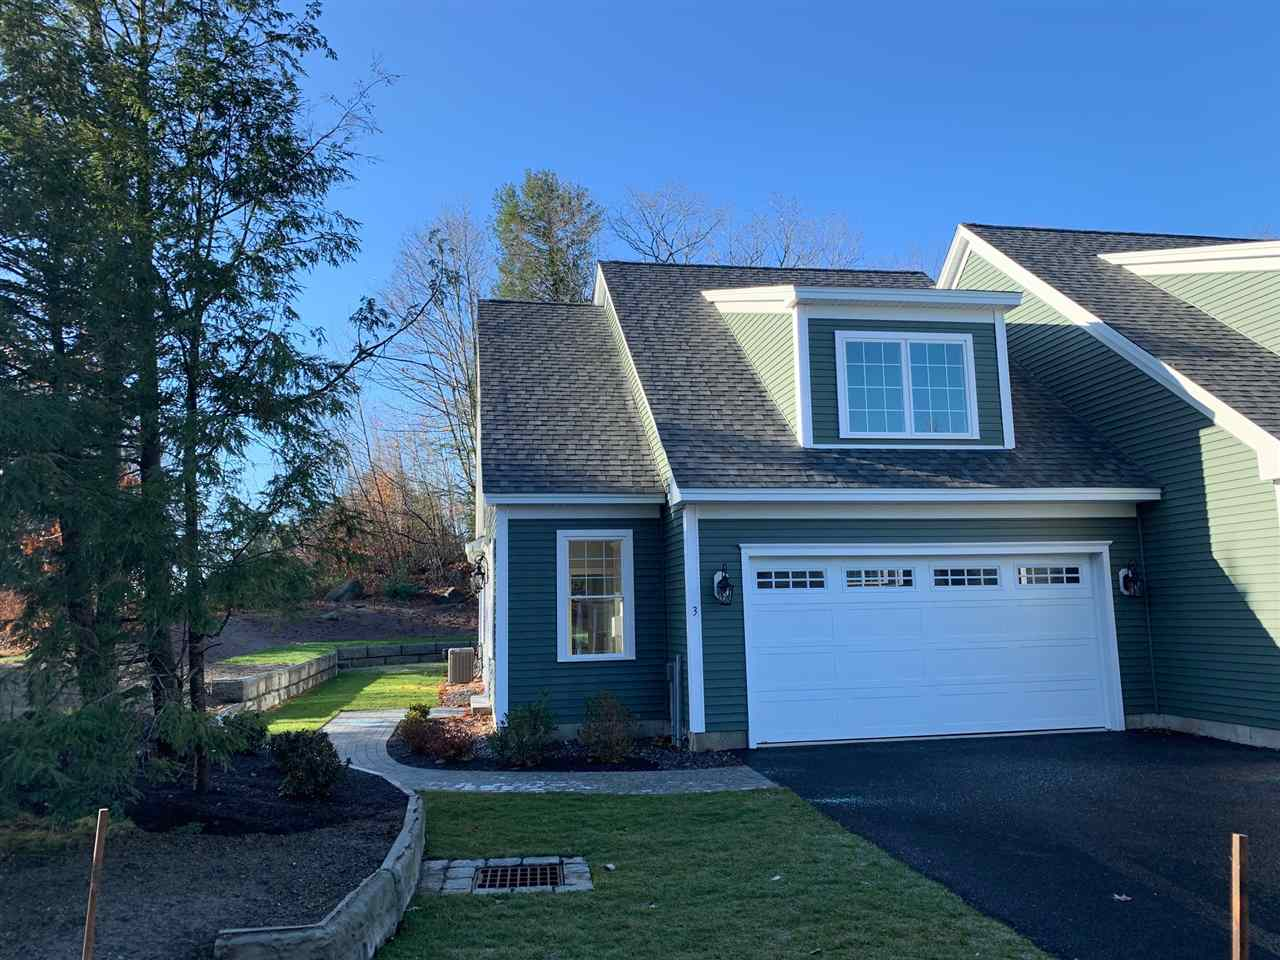 Photo of 3 Green Road Newmarket NH 03857